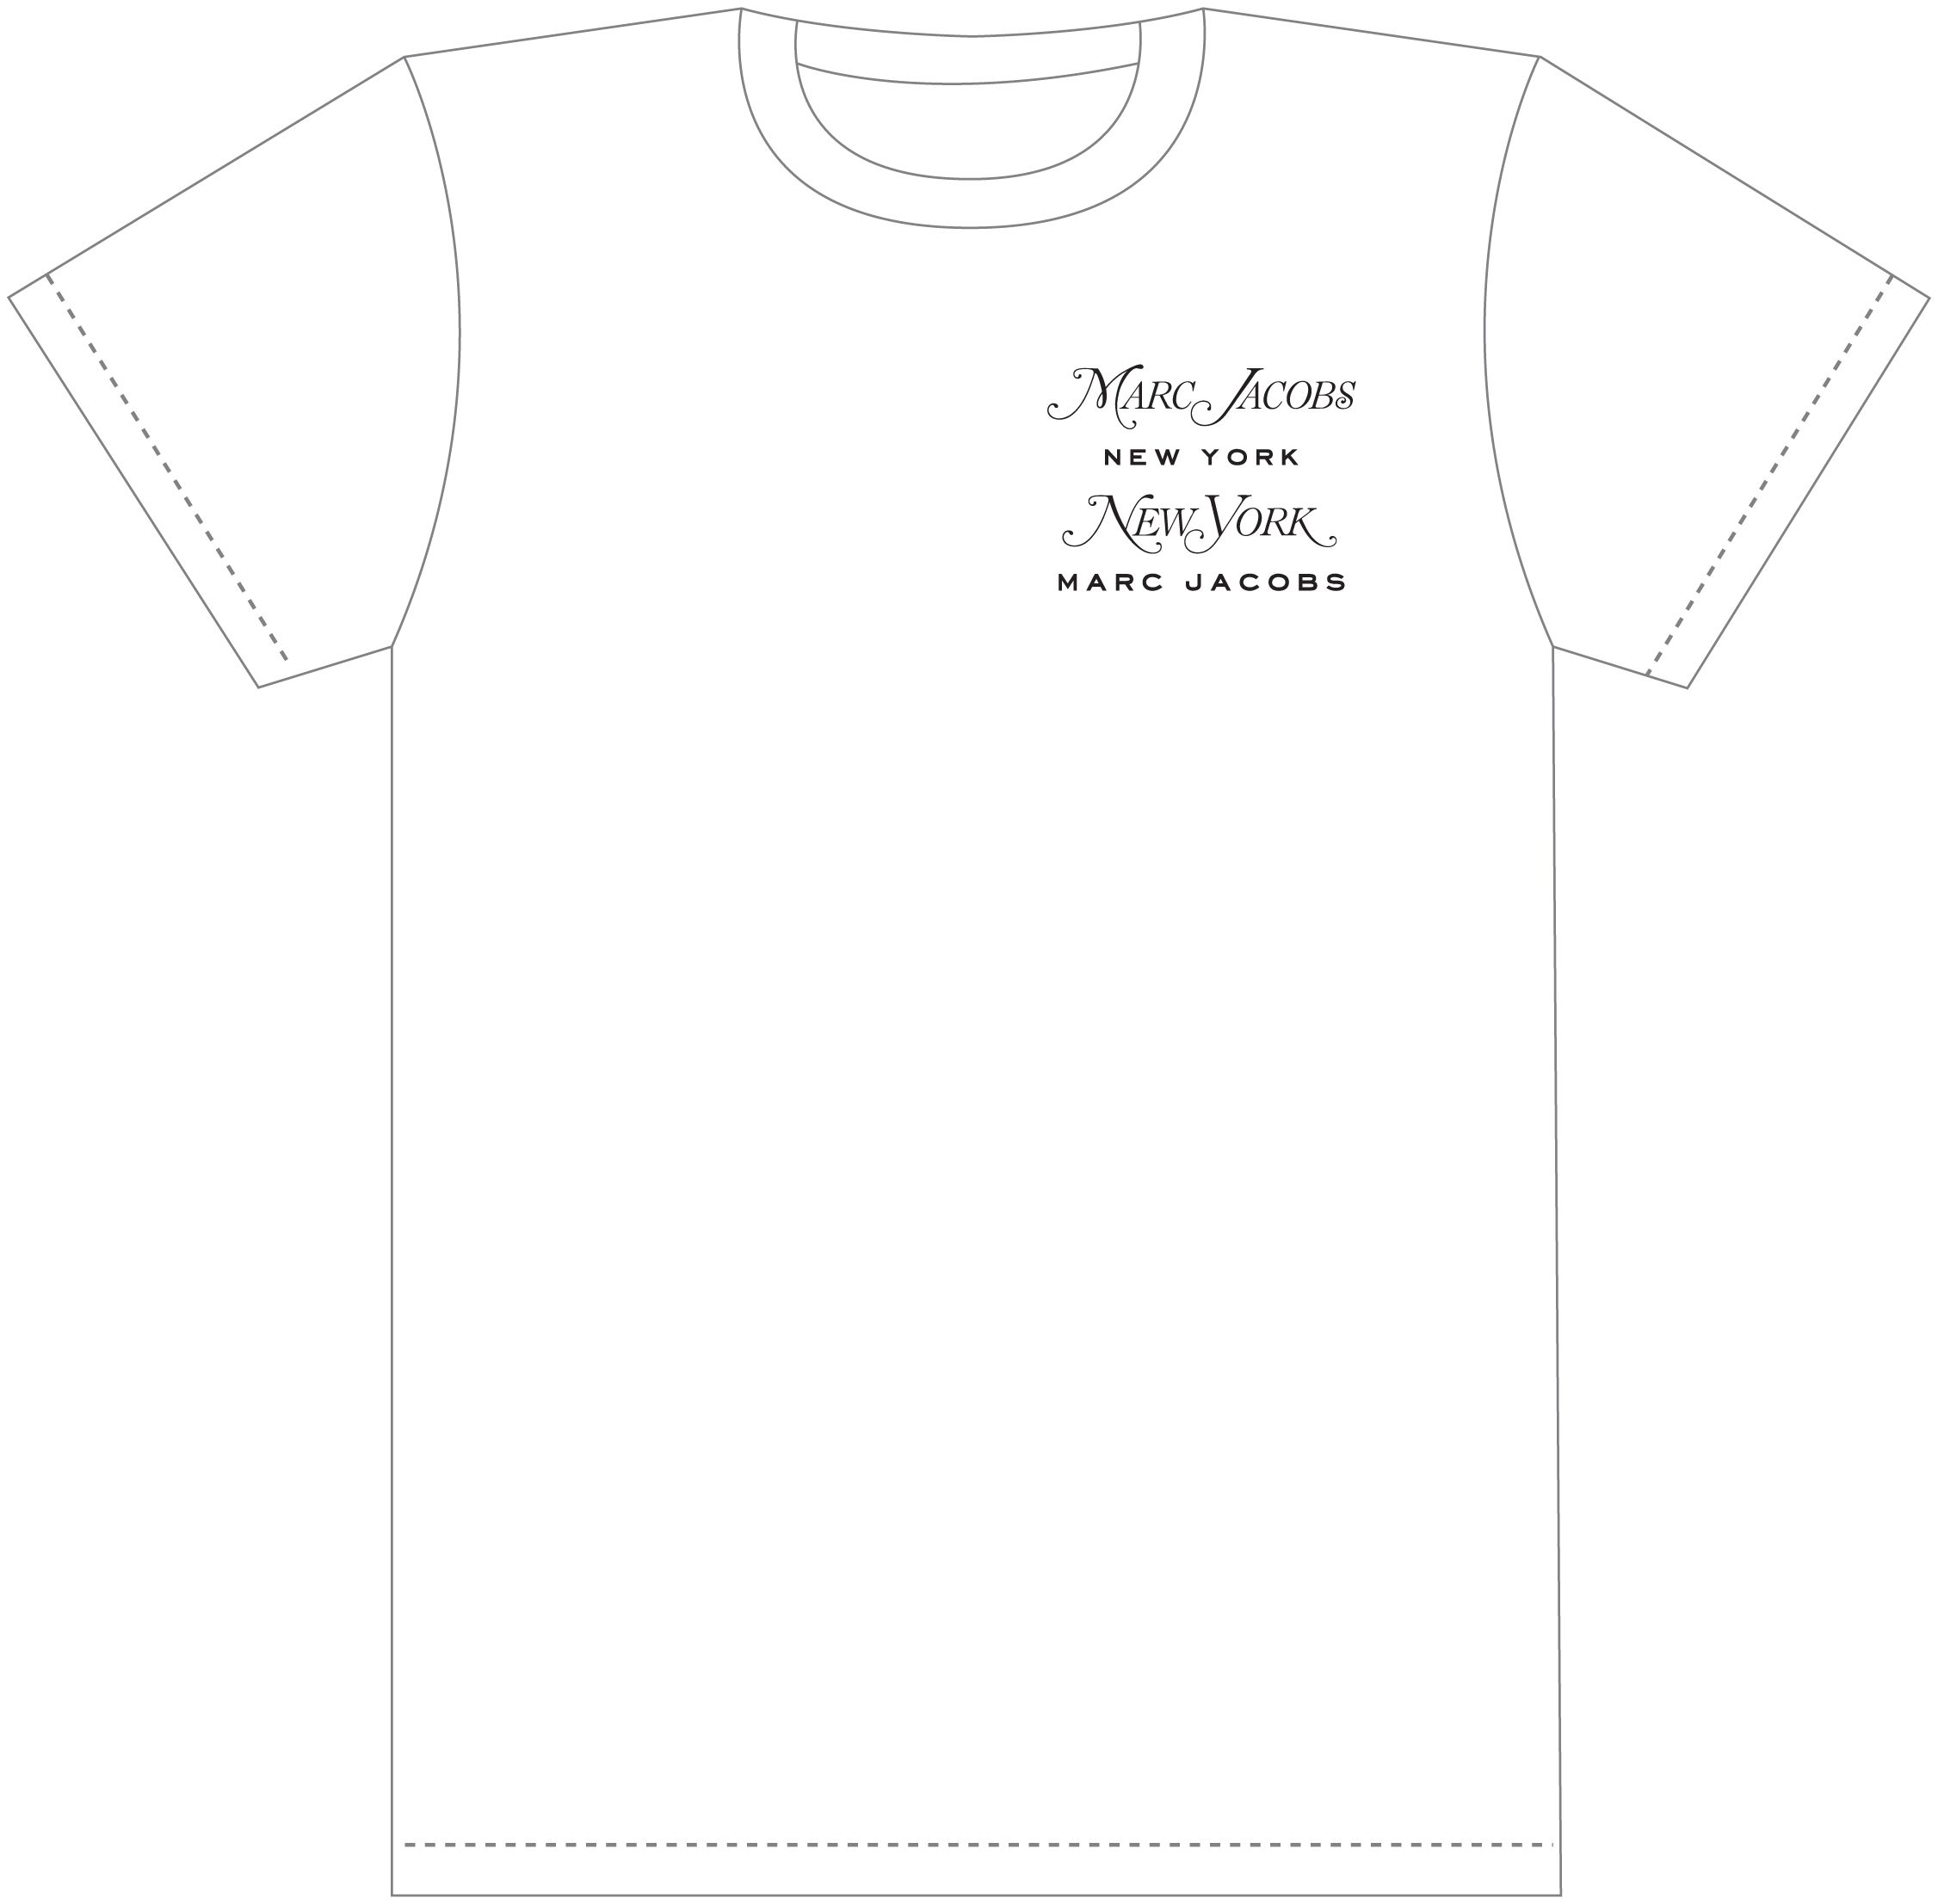 Limited-edition Marc Jacobs + New York Magazine tee. We tried one anothers' typefaces on for size—clever, right? Stop by the Marc Jacobs store on Bleecker St. in NYC tonight during FNO to claim yours!